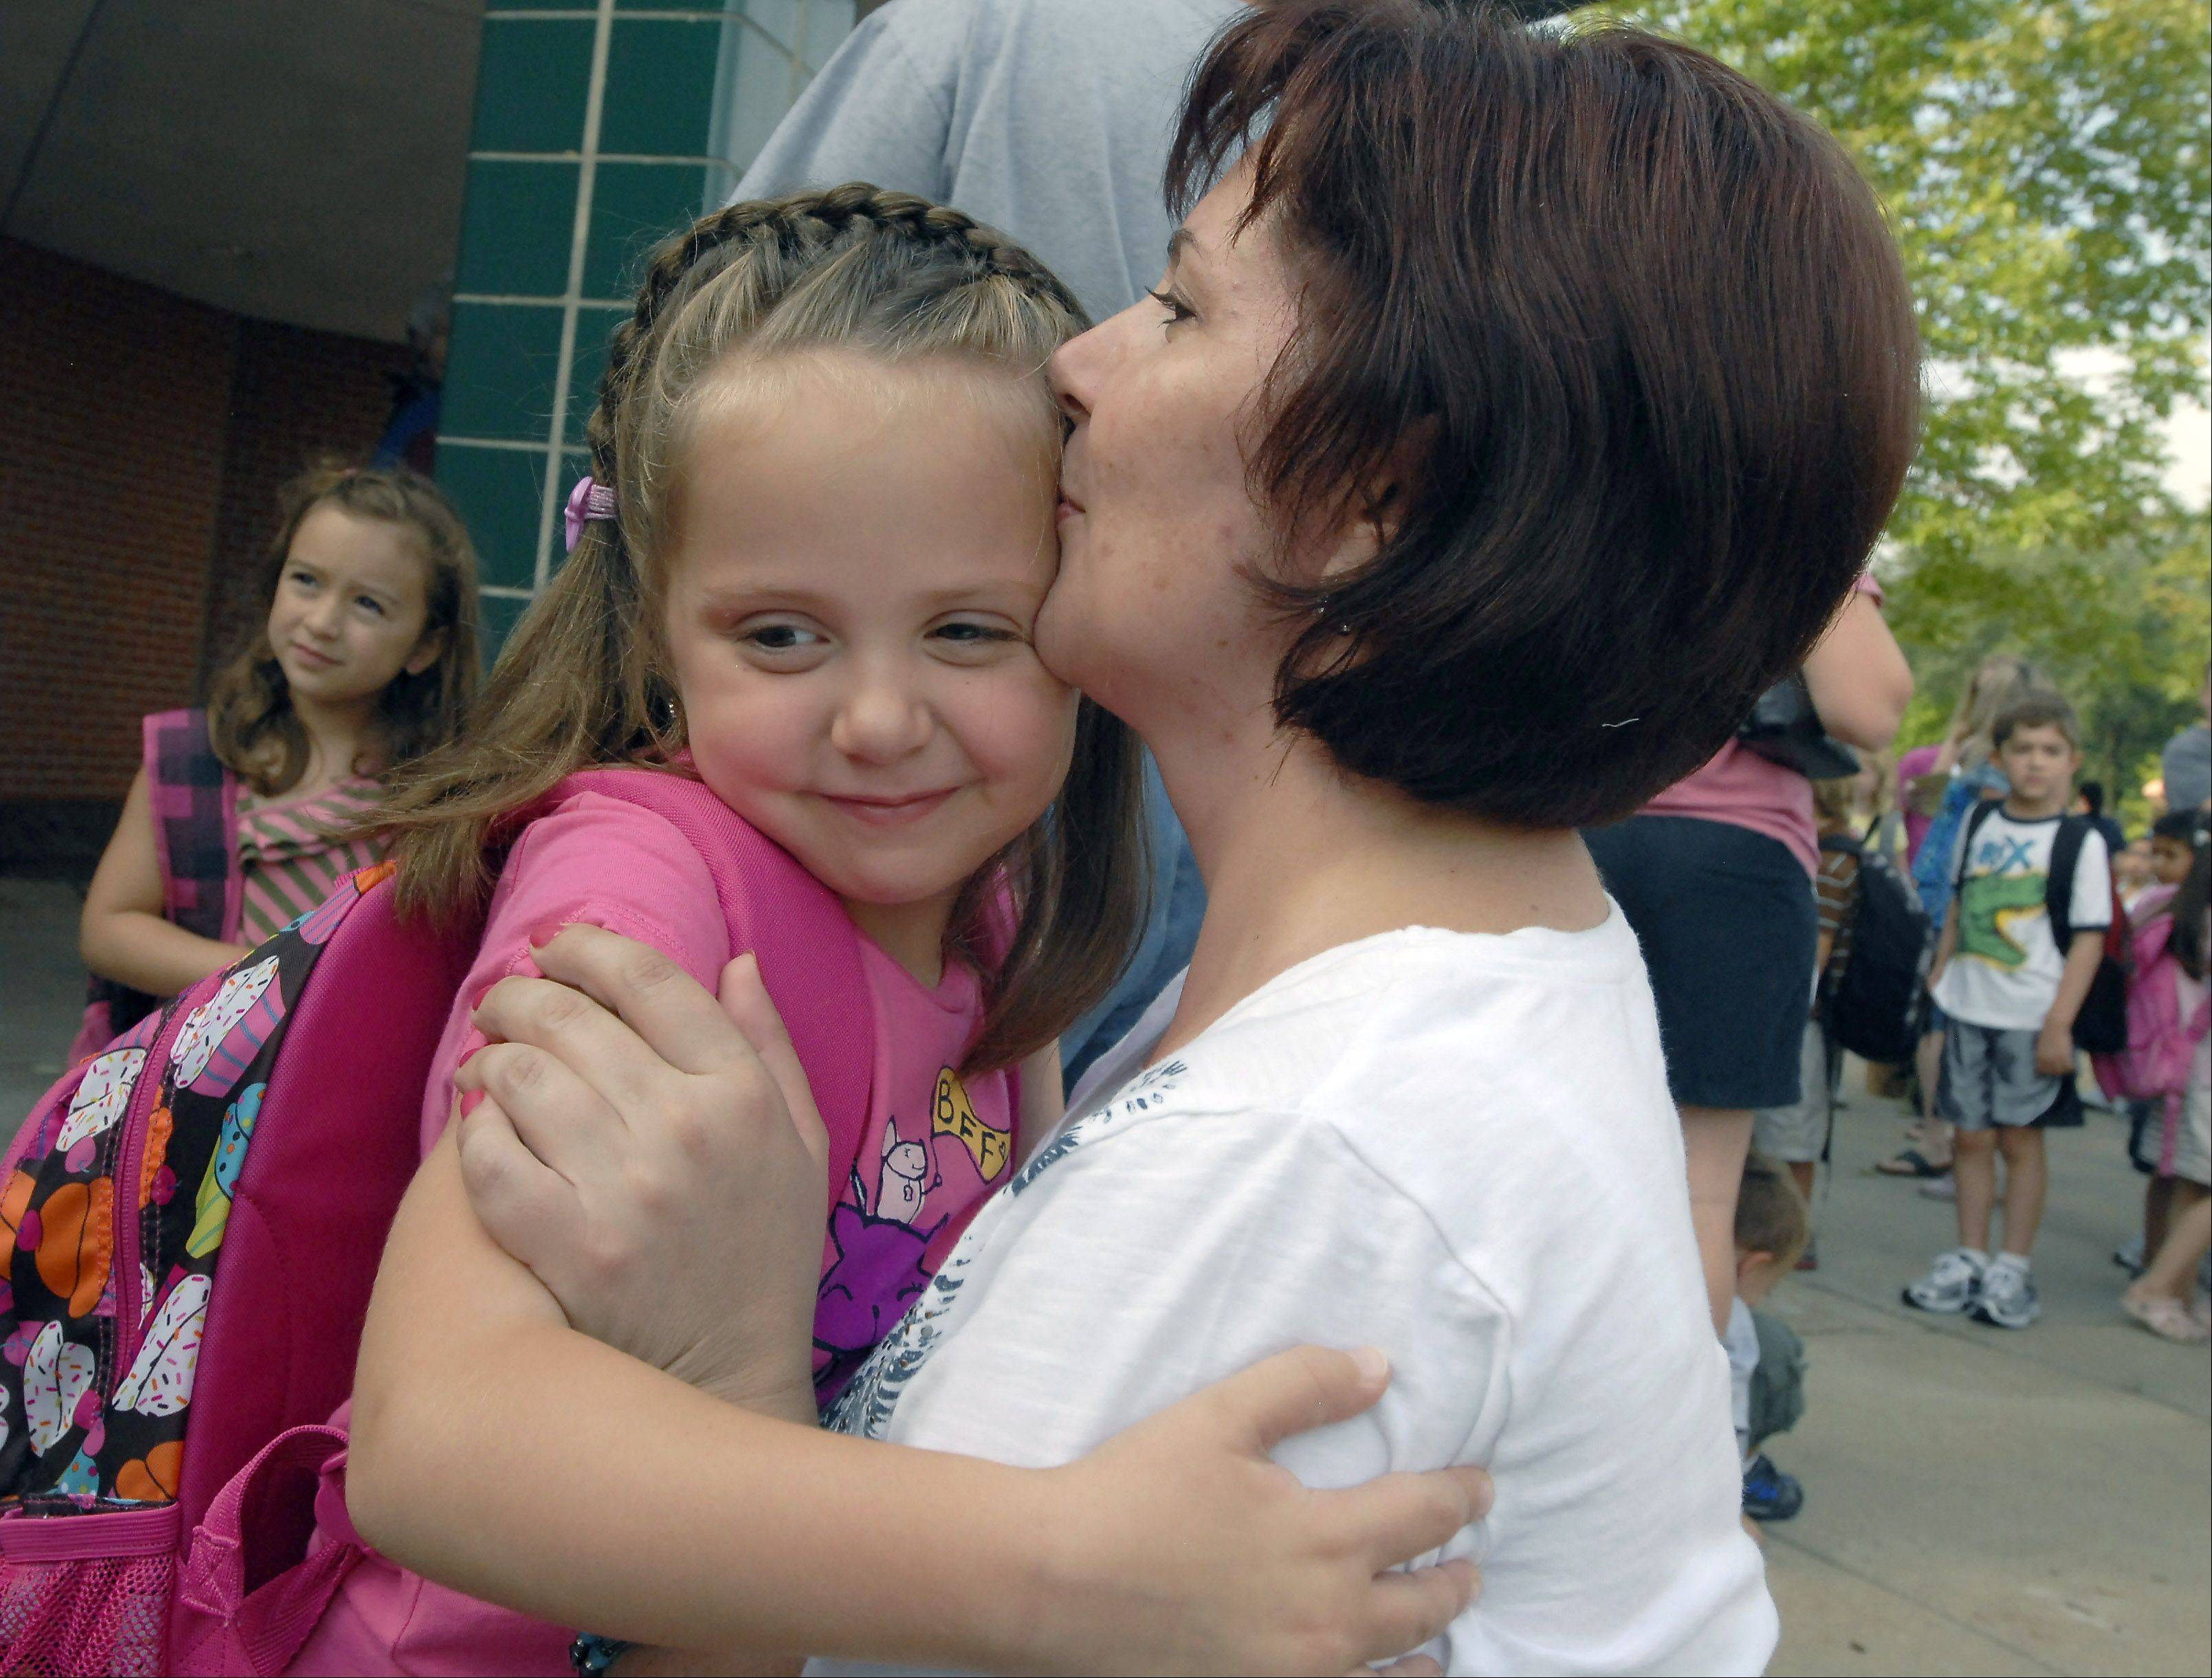 Malgorzata Myrda kisses her daughter Angelica goodbye as she starts her first day of kindergarten at Greenbrier Elementary School in Arlington Heights.